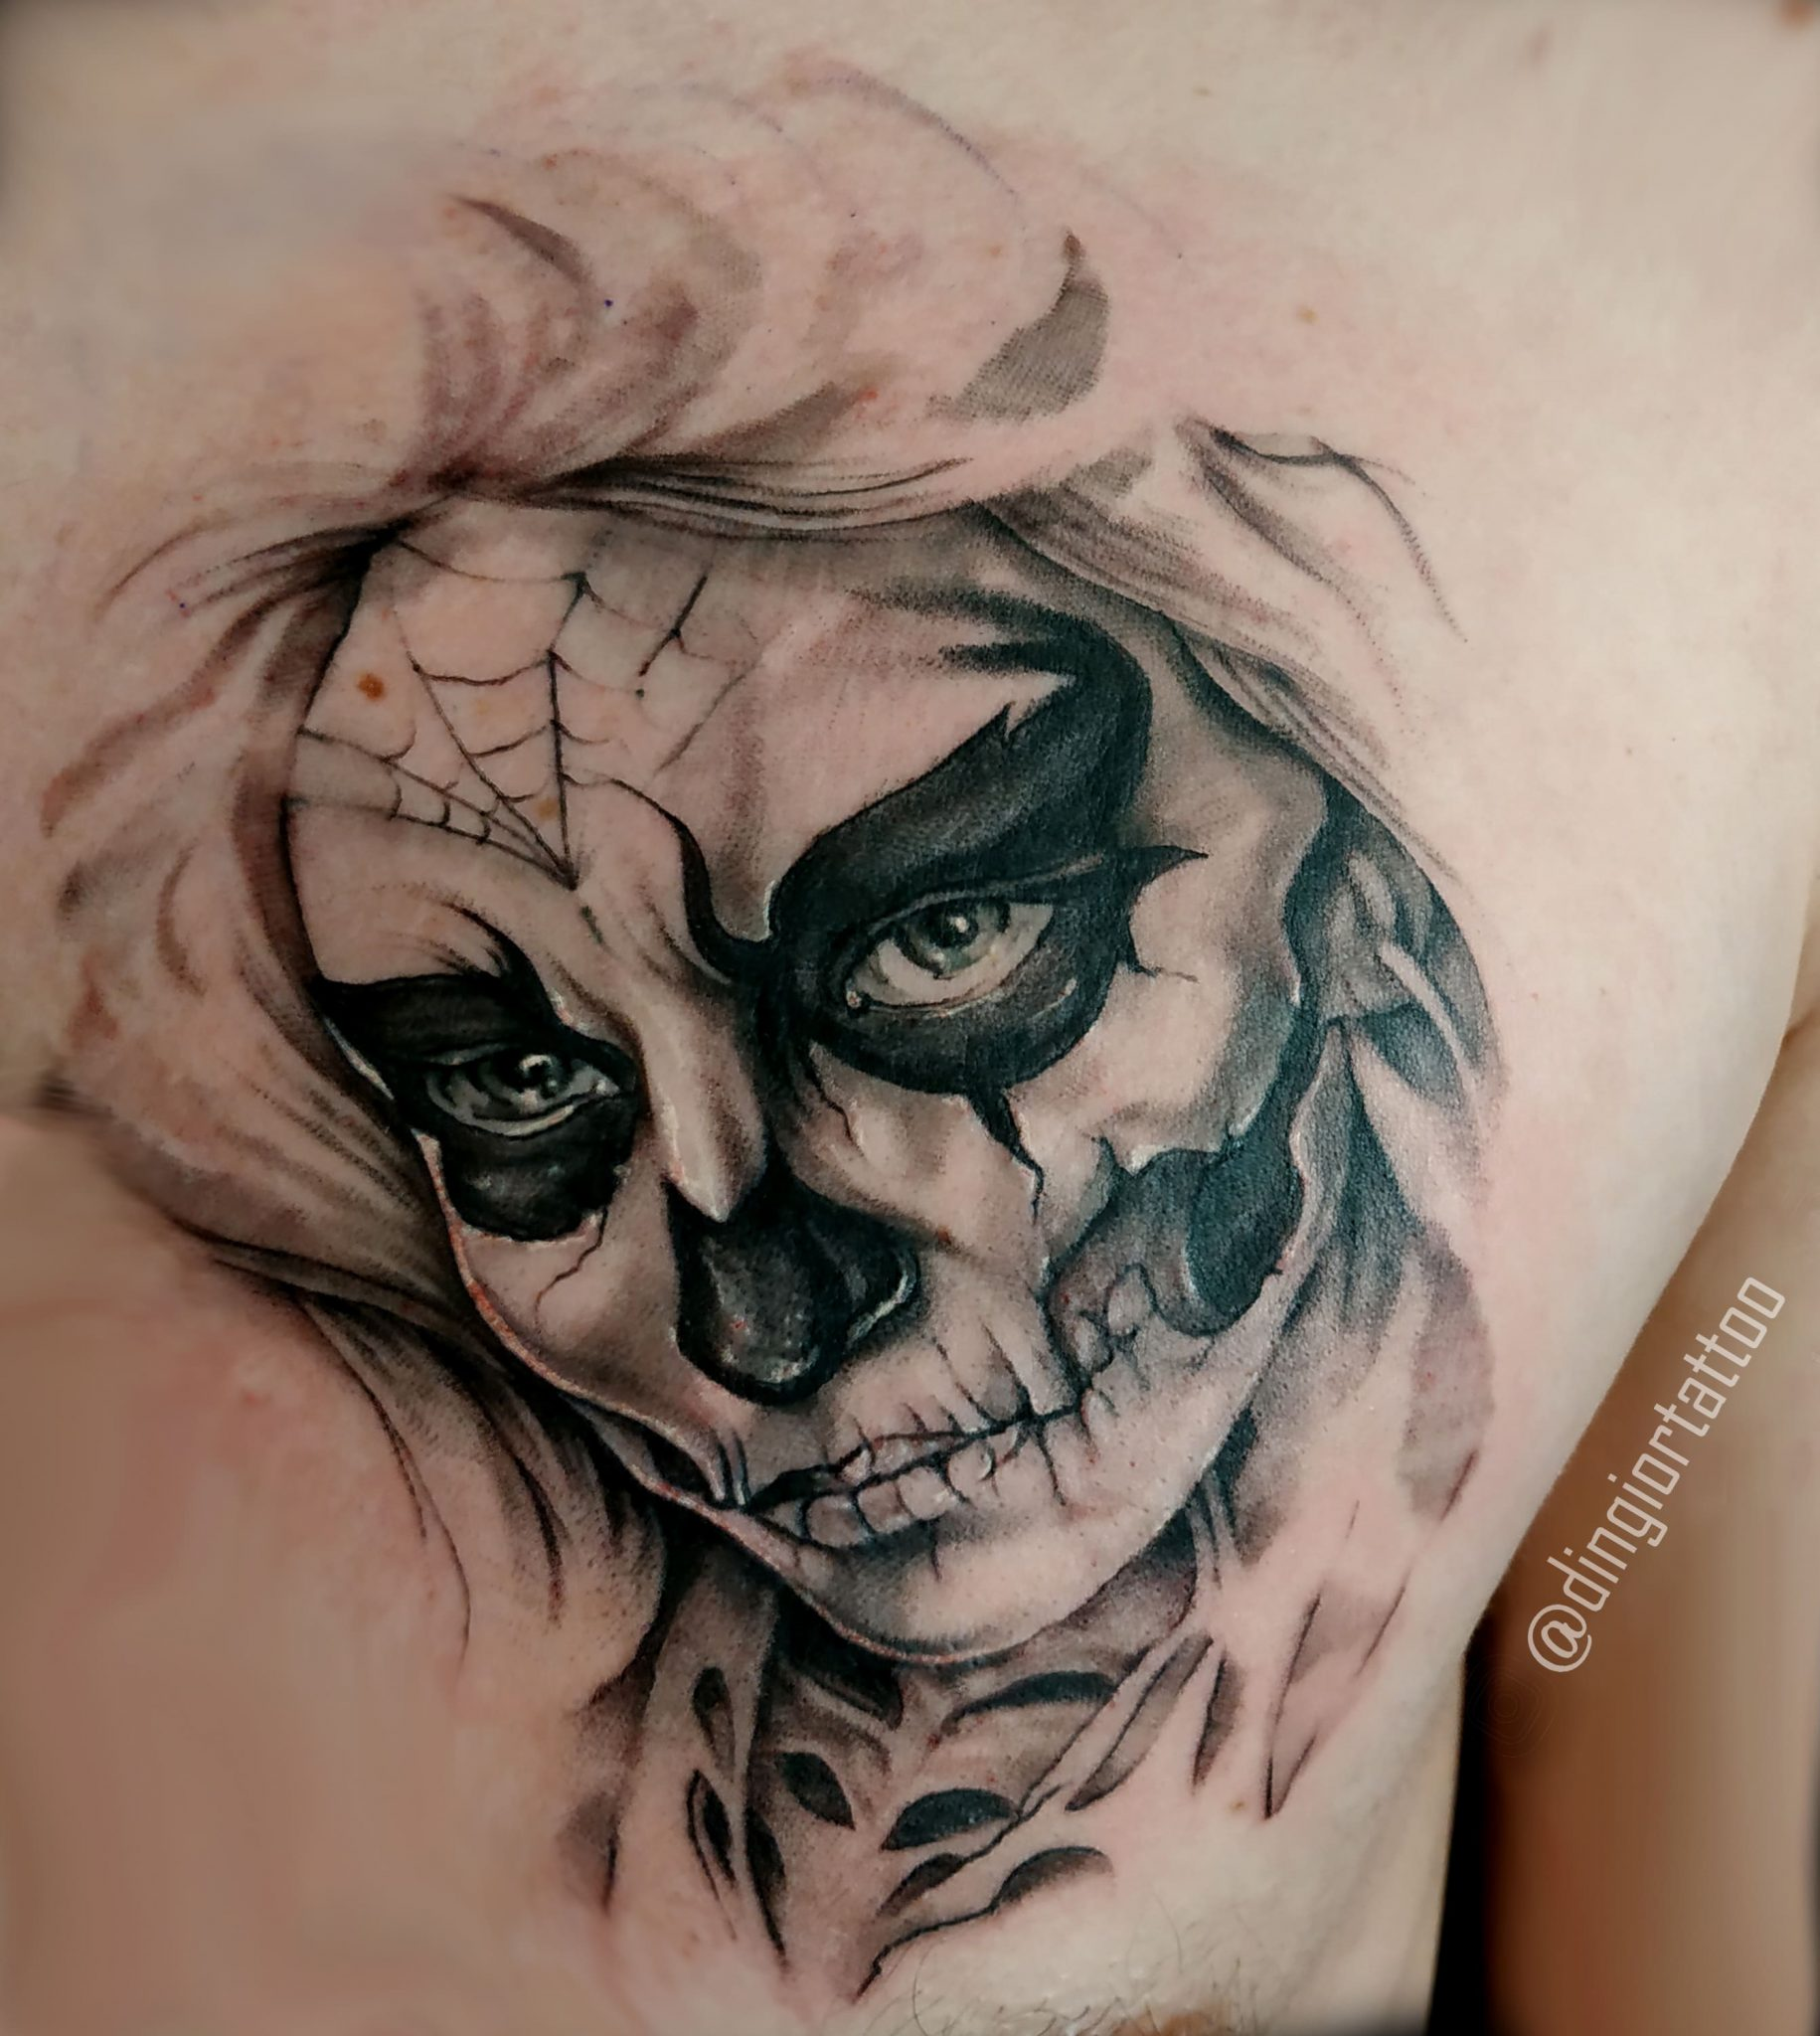 Realism or Realistic Tattoos Chicano